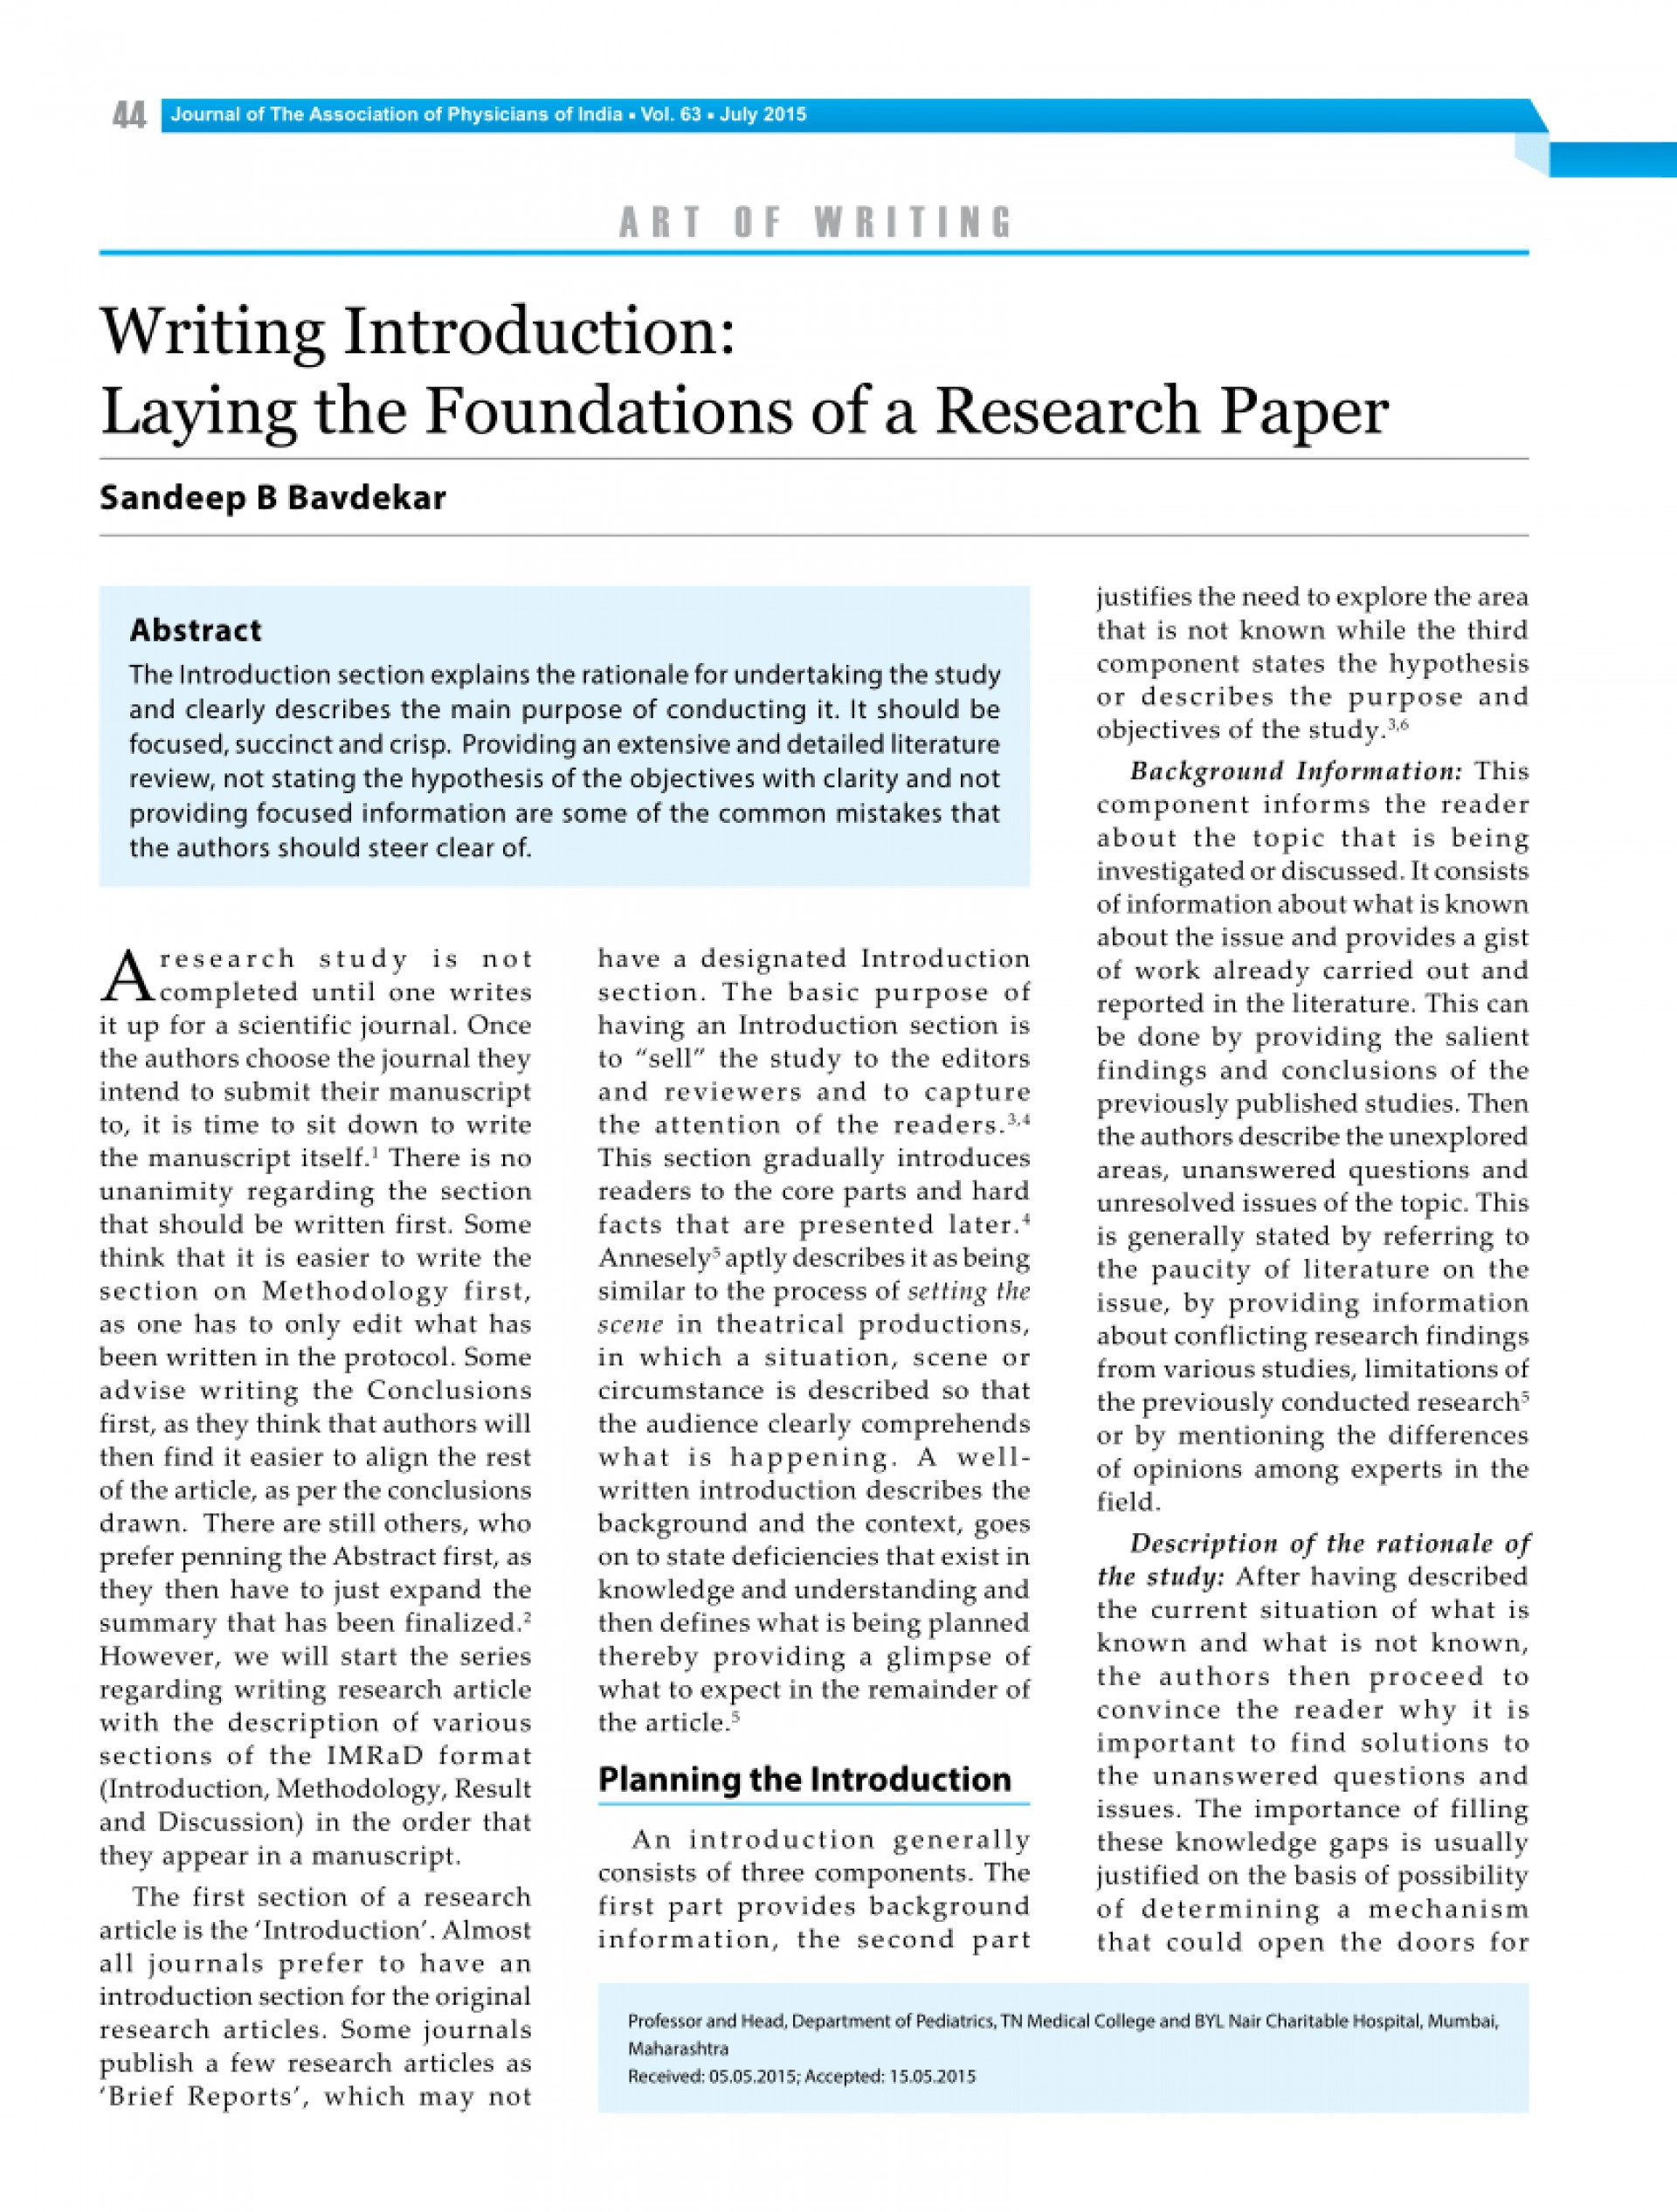 006 Sample Of Research Paper Introduction Stupendous A Writing Guidelines In Ppt How To Write Apa 1920